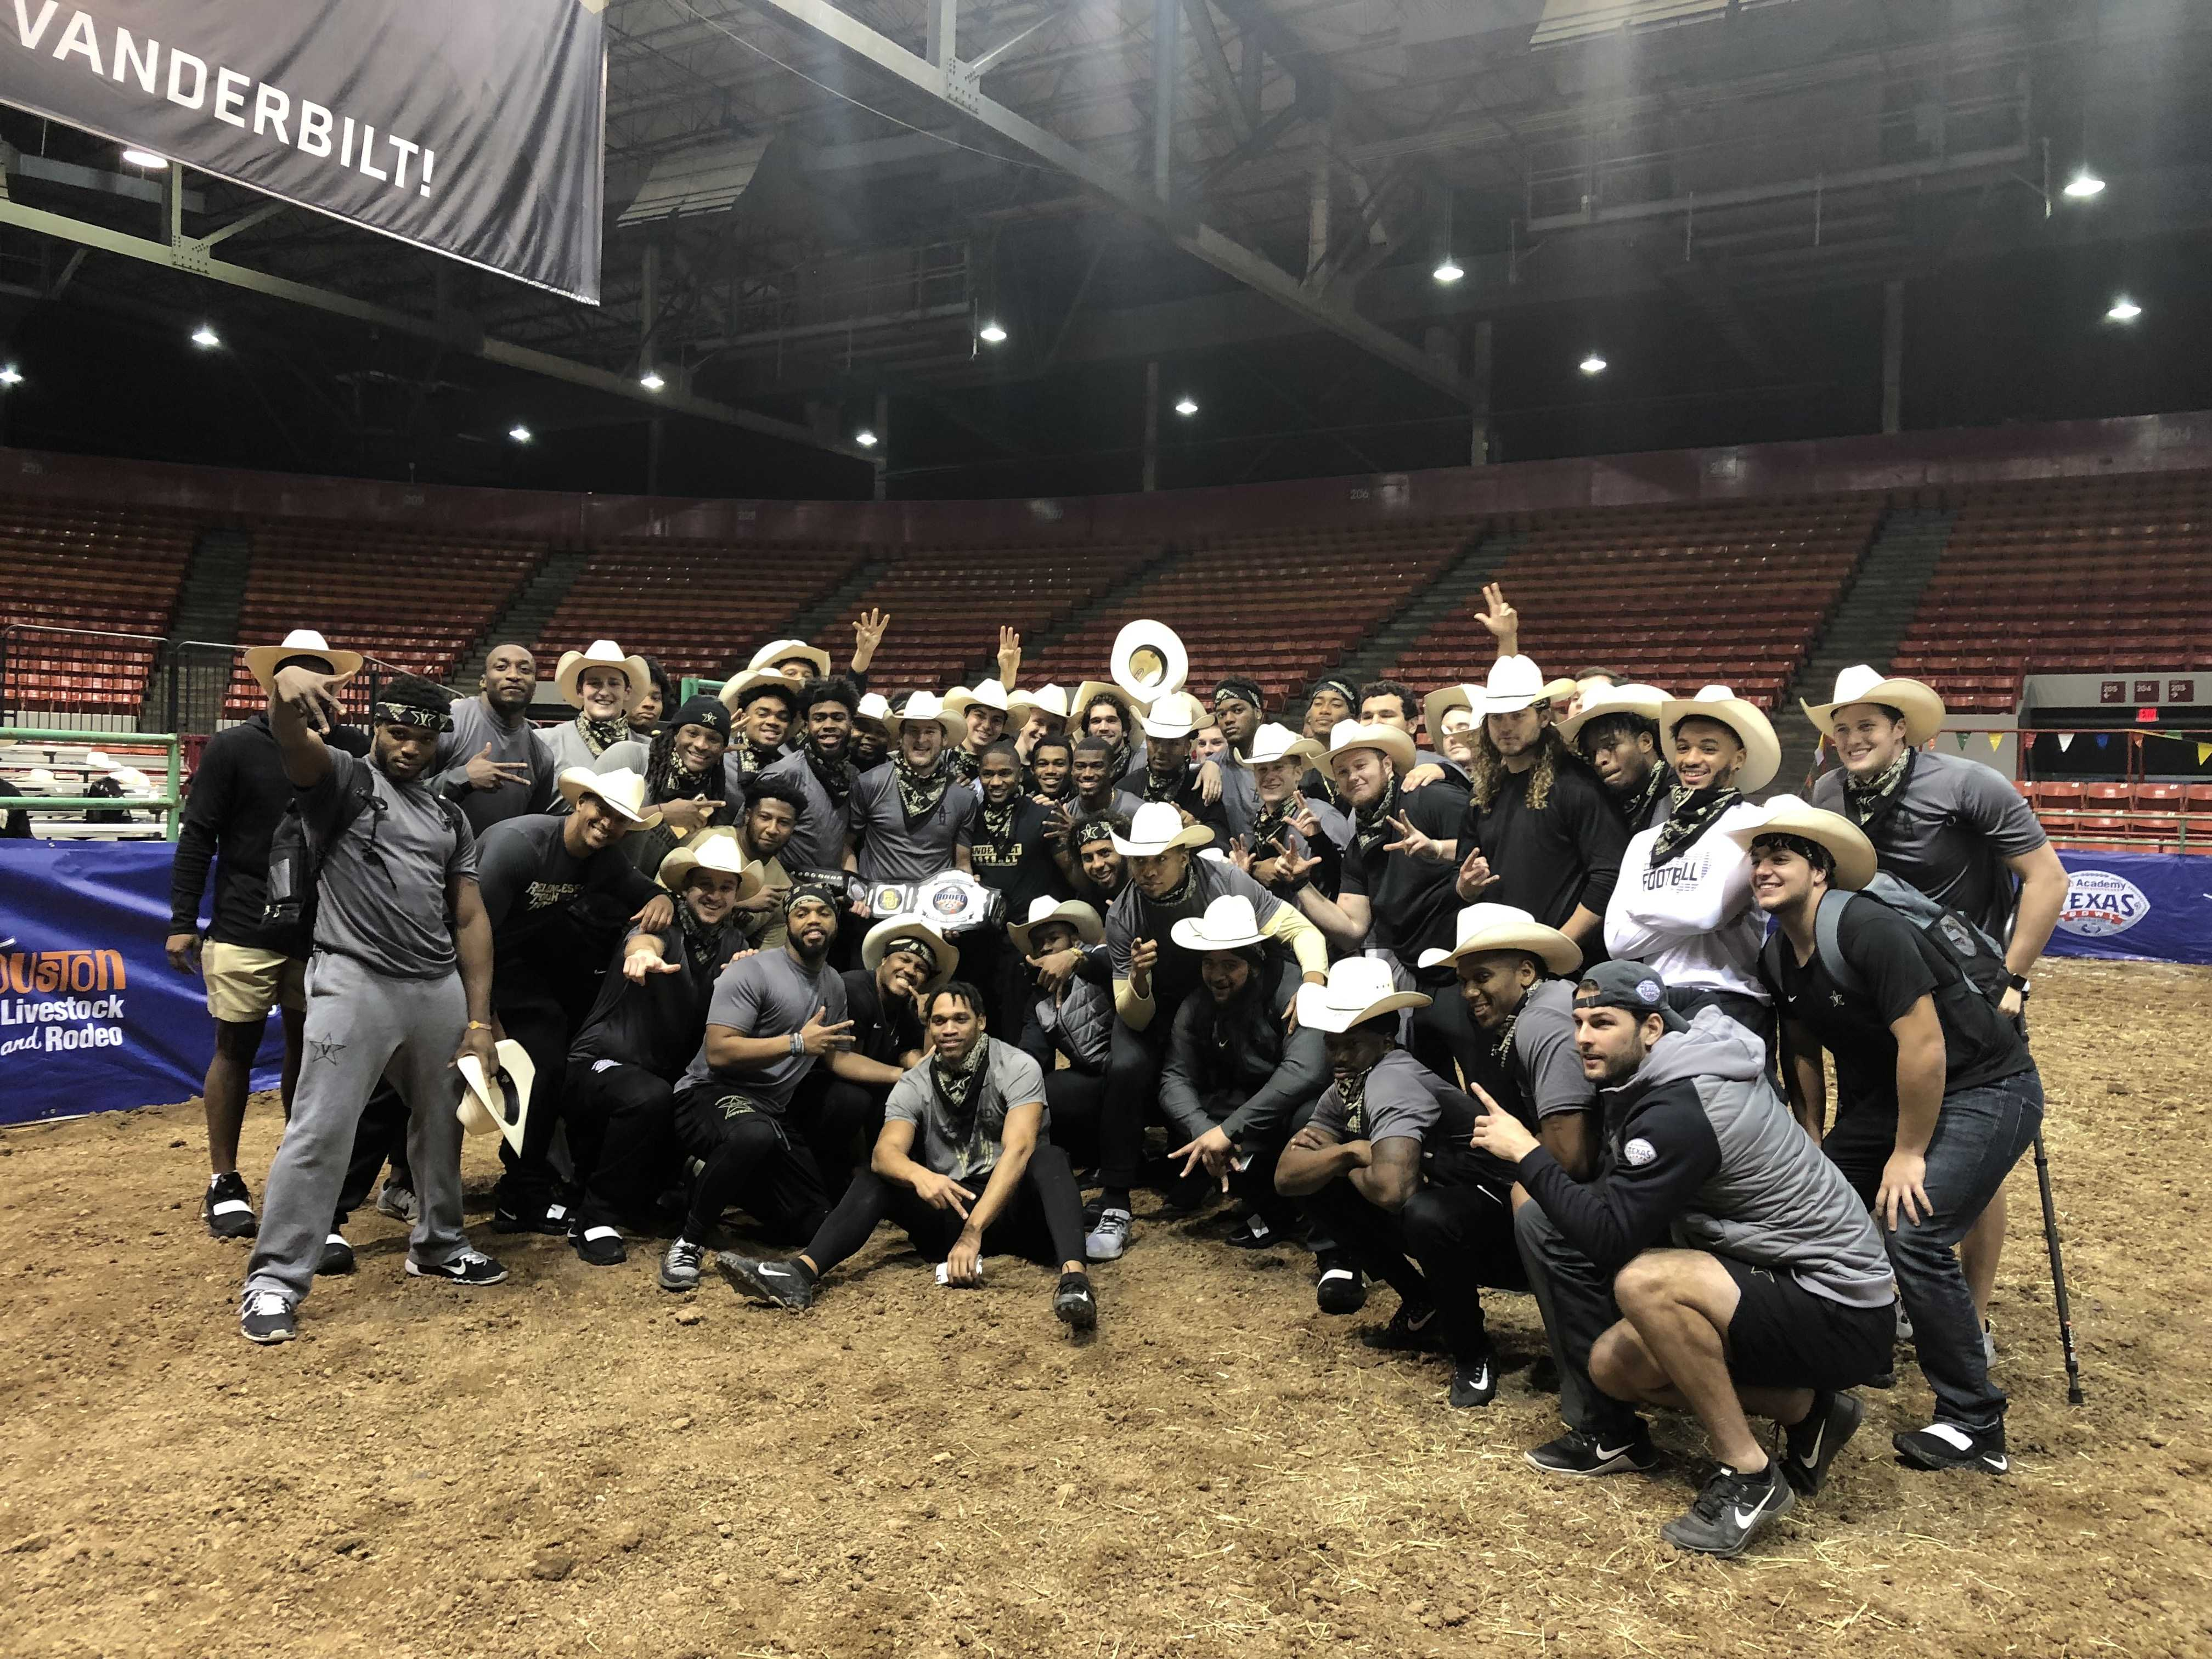 Vanderbilt wins the Rodeo Bowl on December 23, 2018 (Photo by Betsy Goodfriend)